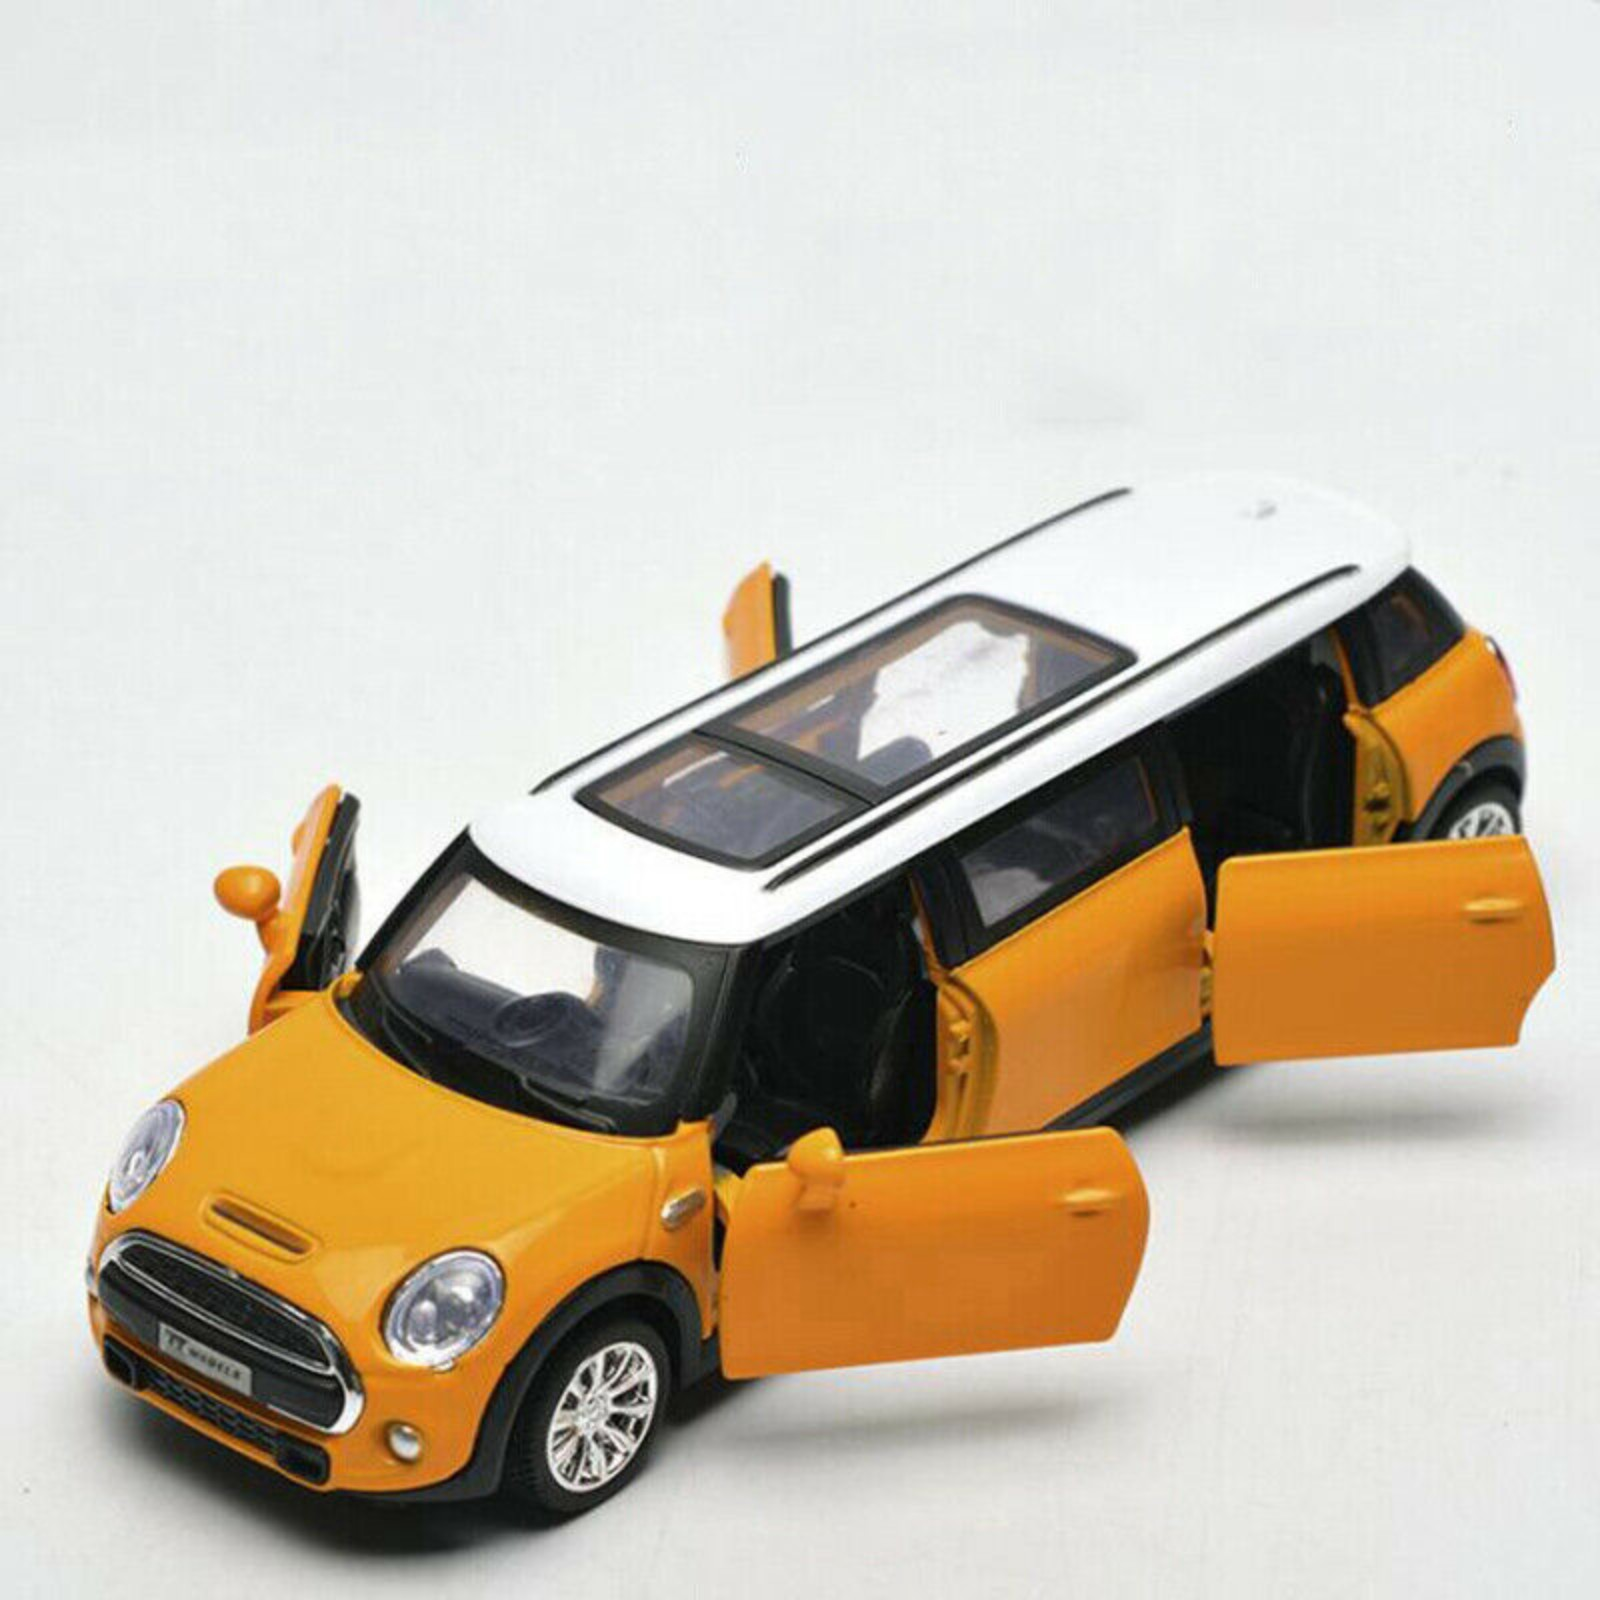 Limousine Metal Car|Die Cast Pull Back Action Mini Cooper Extended Limousine Car Diecast Toy Vehicle Car Model | Perfect Toy Set for Kids- Yellow